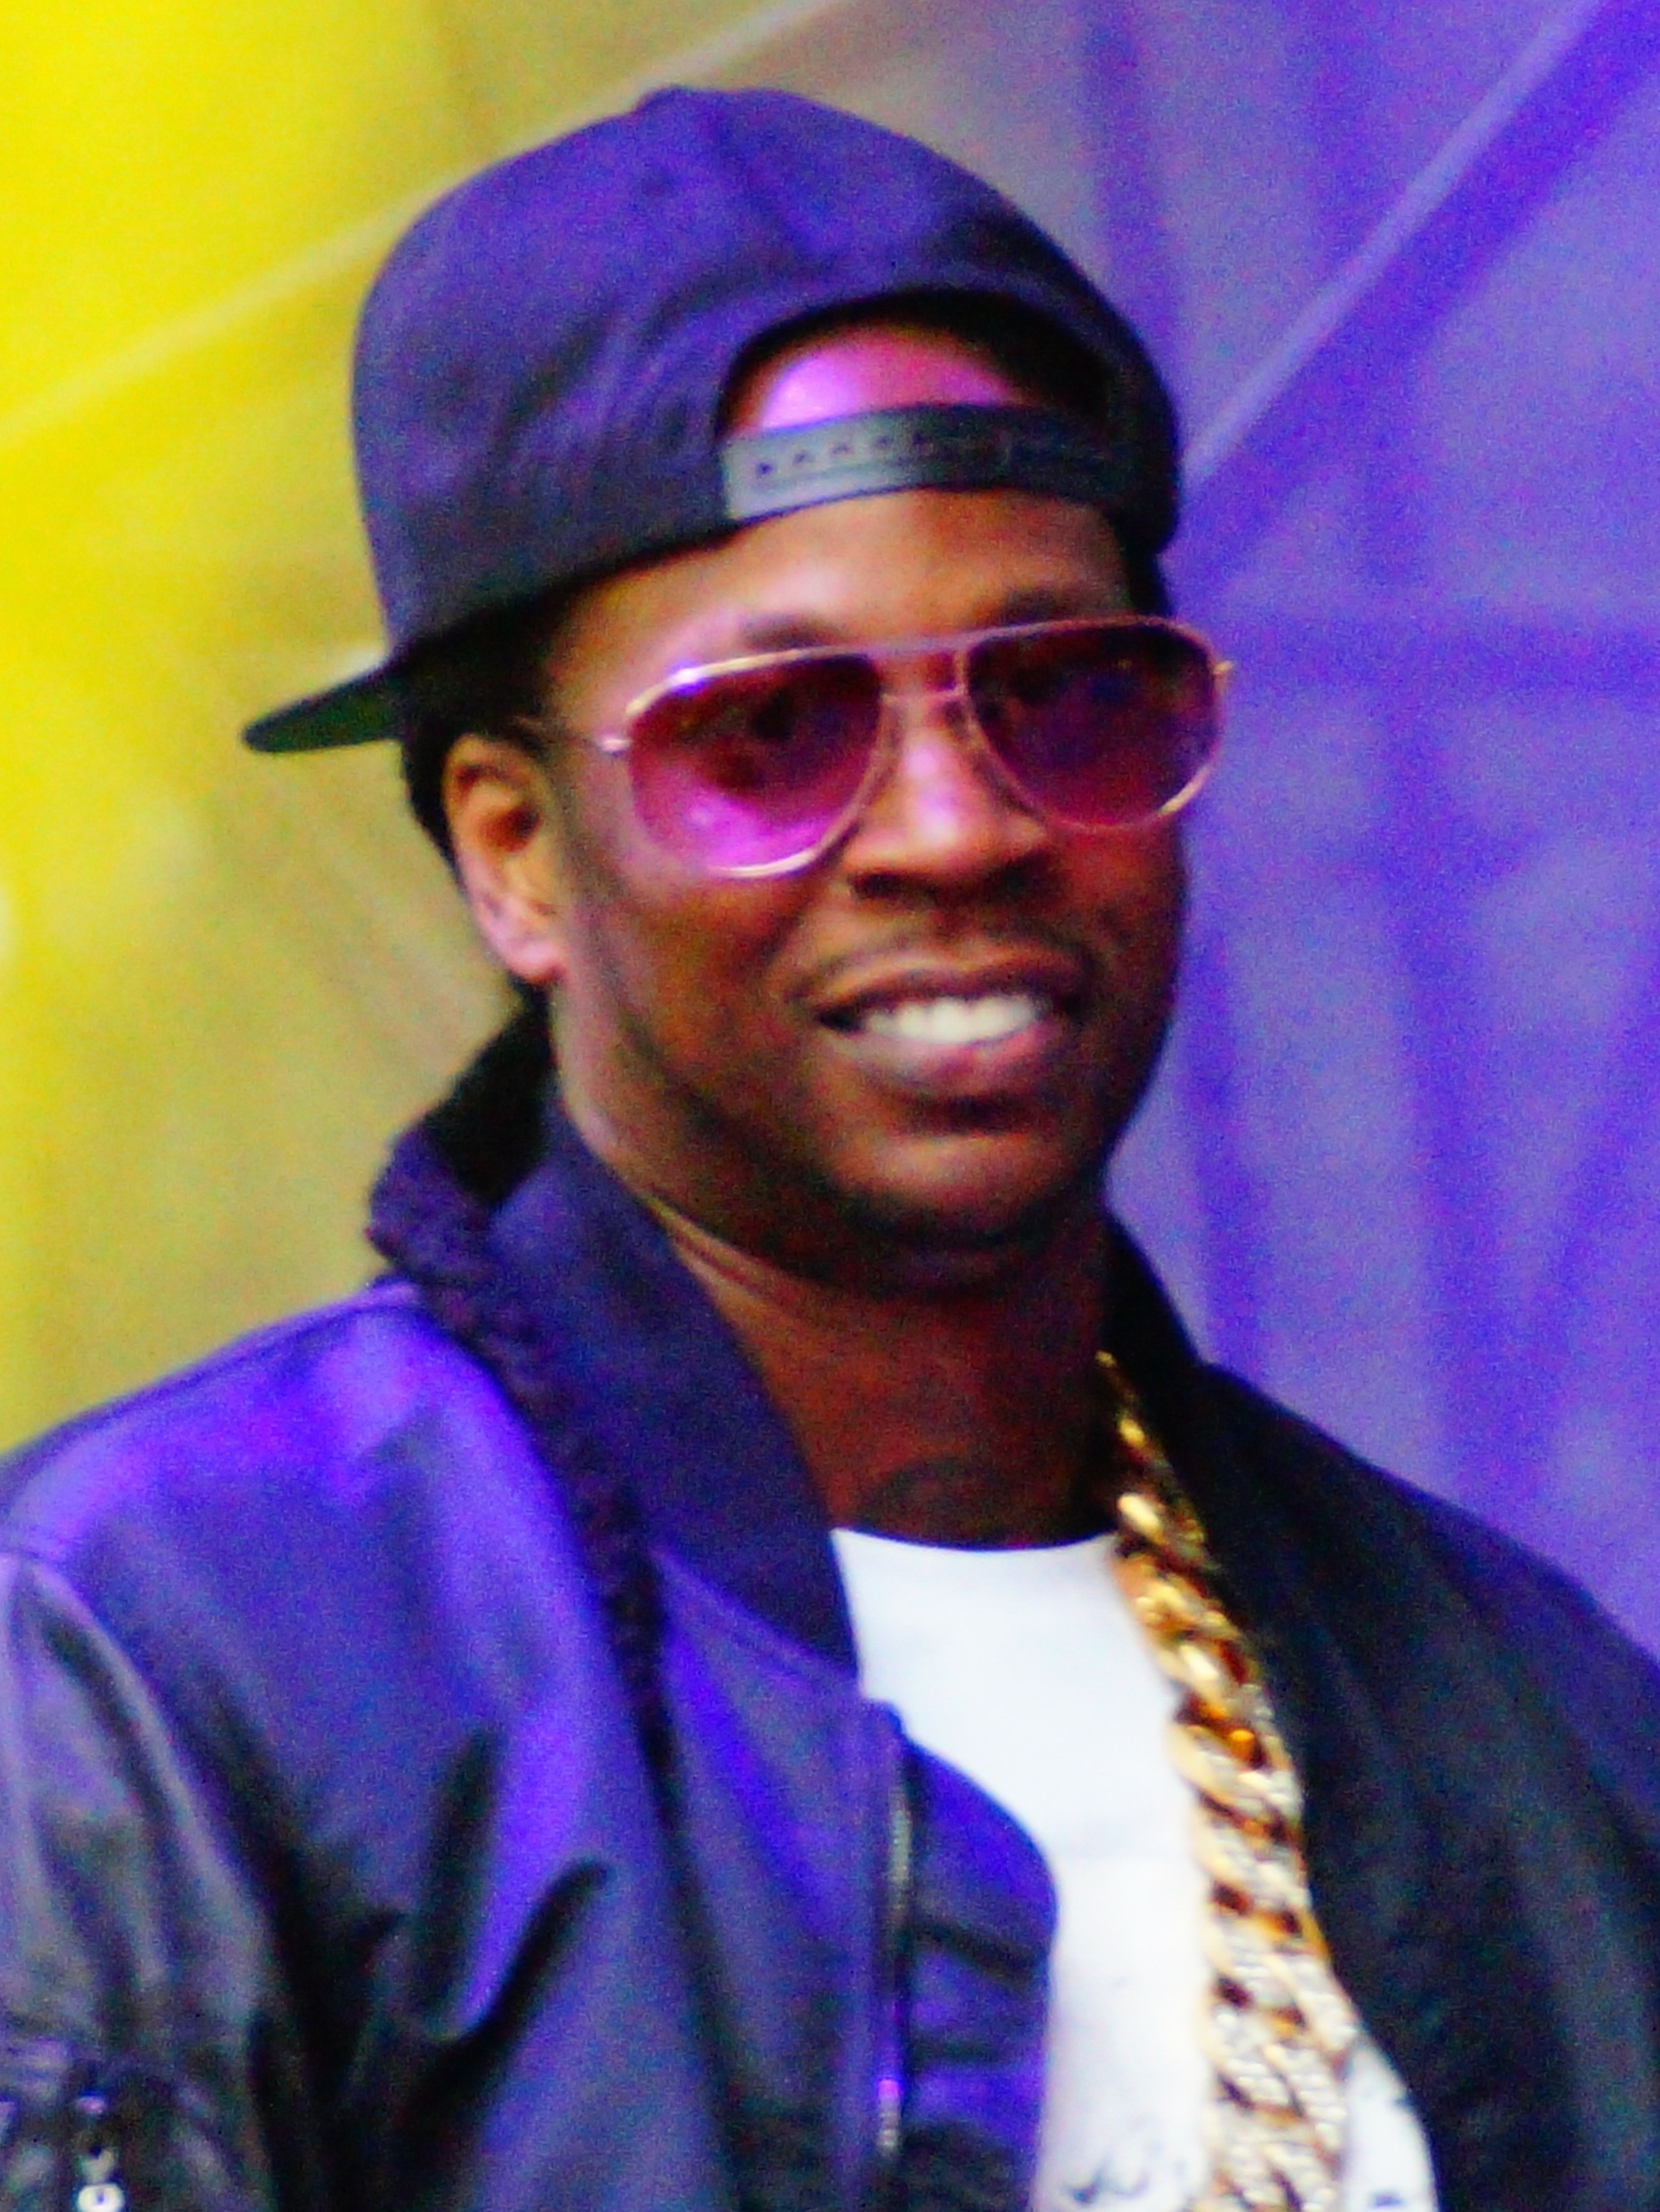 File:2 Chainz May 2014 2 (cropped) jpg - Wikimedia Commons